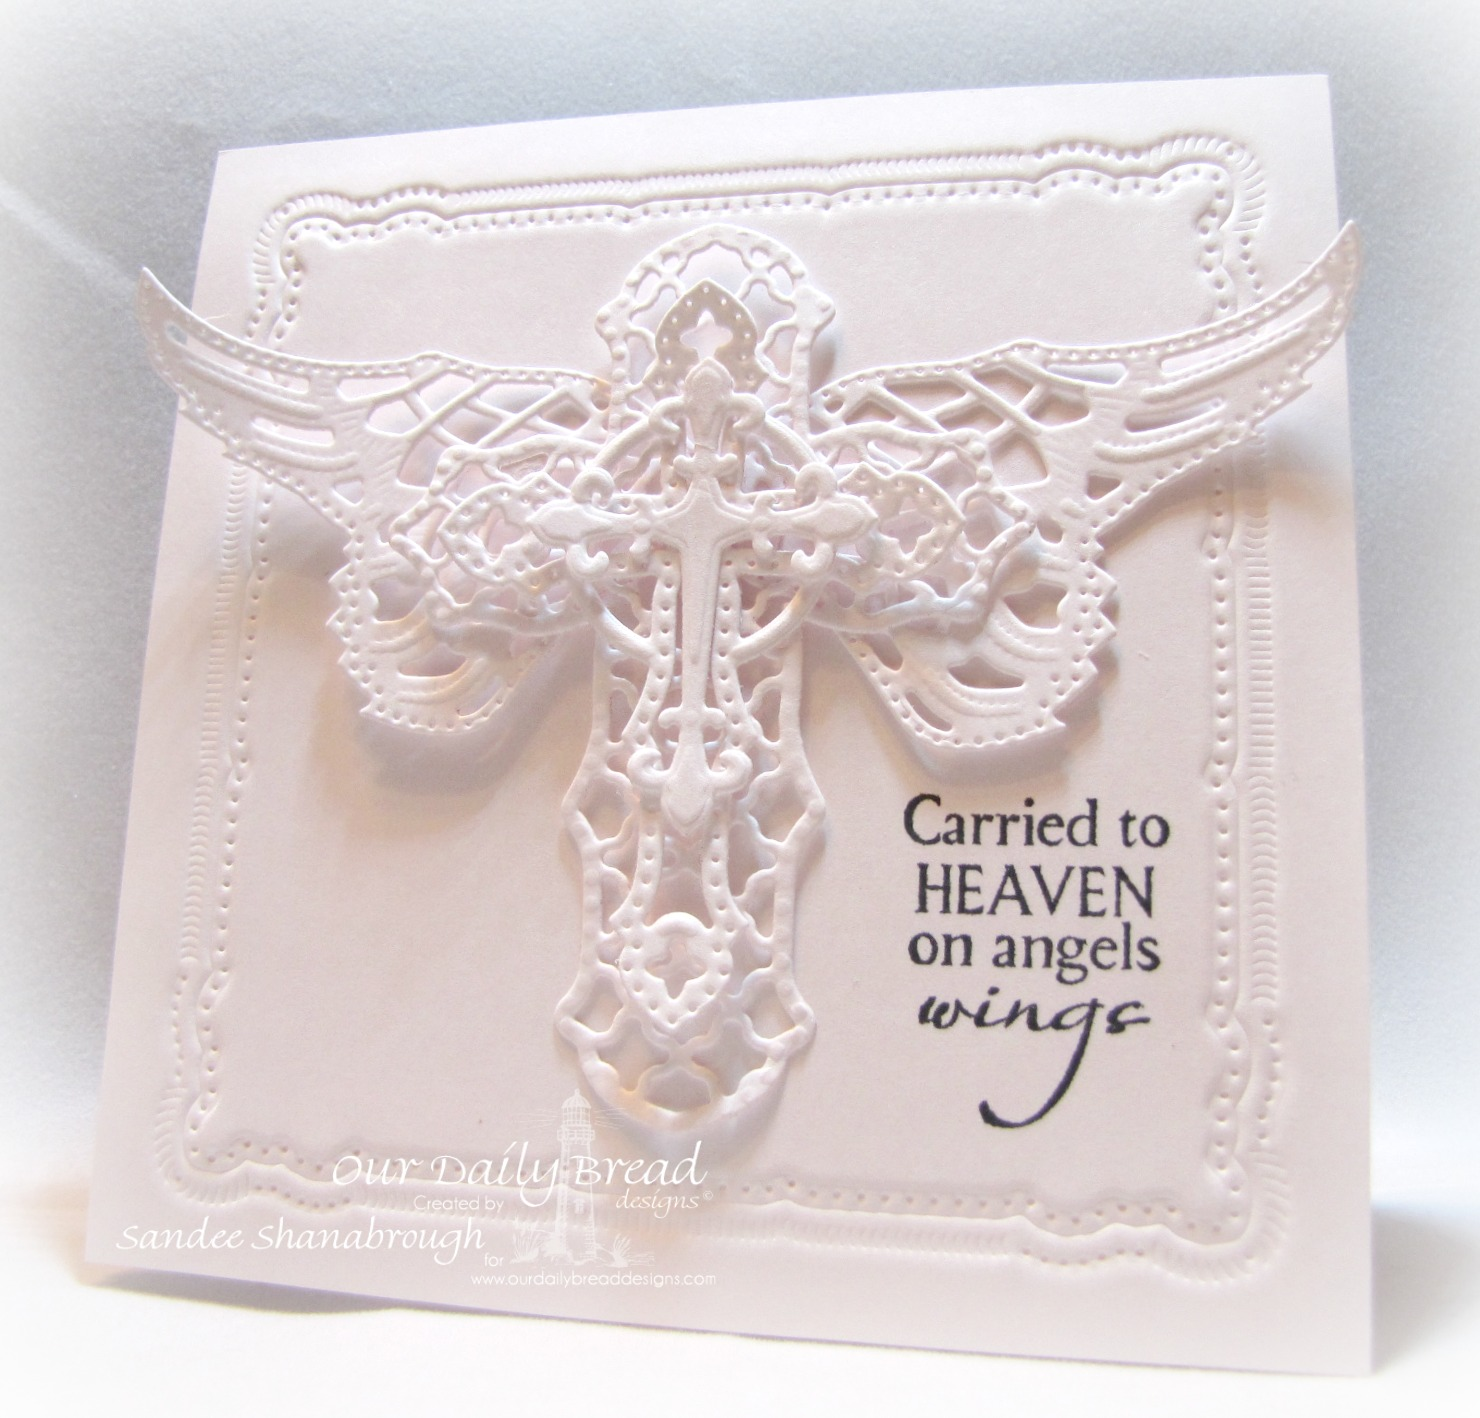 Stamps - Our Daily Bread Designs Carried to Heaven, ODBD Custom Ornamental Crosses Die, ODBD Angel Wings Die